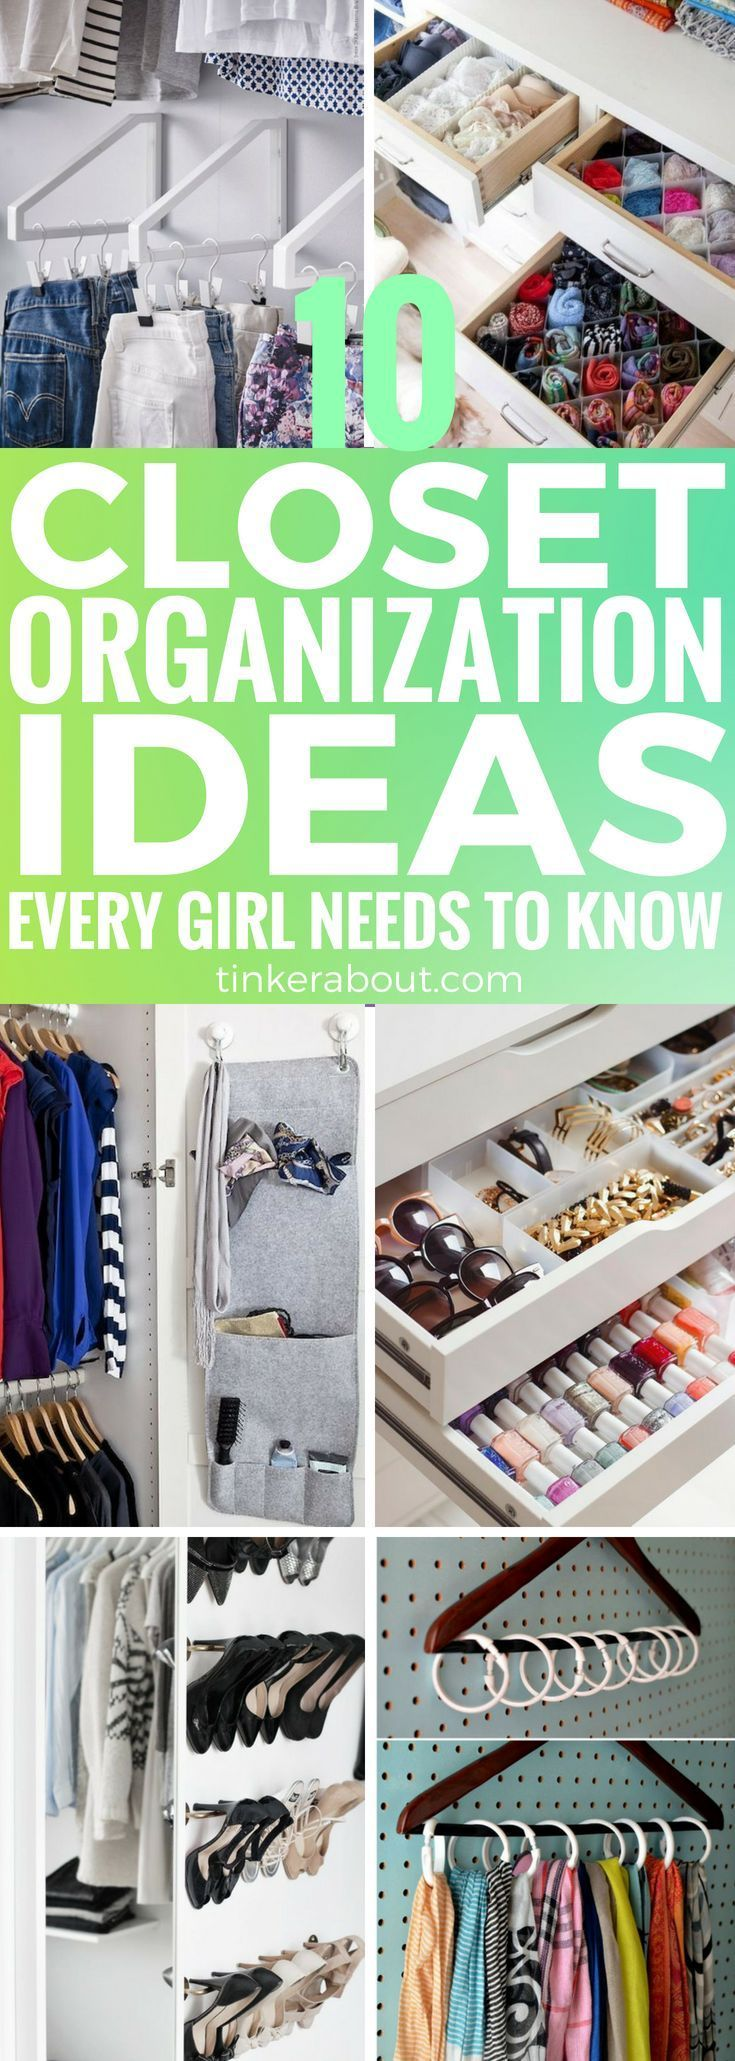 10 Closet Organization Ideas To Keep Your Bedroom Organized is part of bedroom Organization Closet - Organize your closet and keep the mess out of your bedroom! Click through to find 10 cheap & easy closet organization ideas!